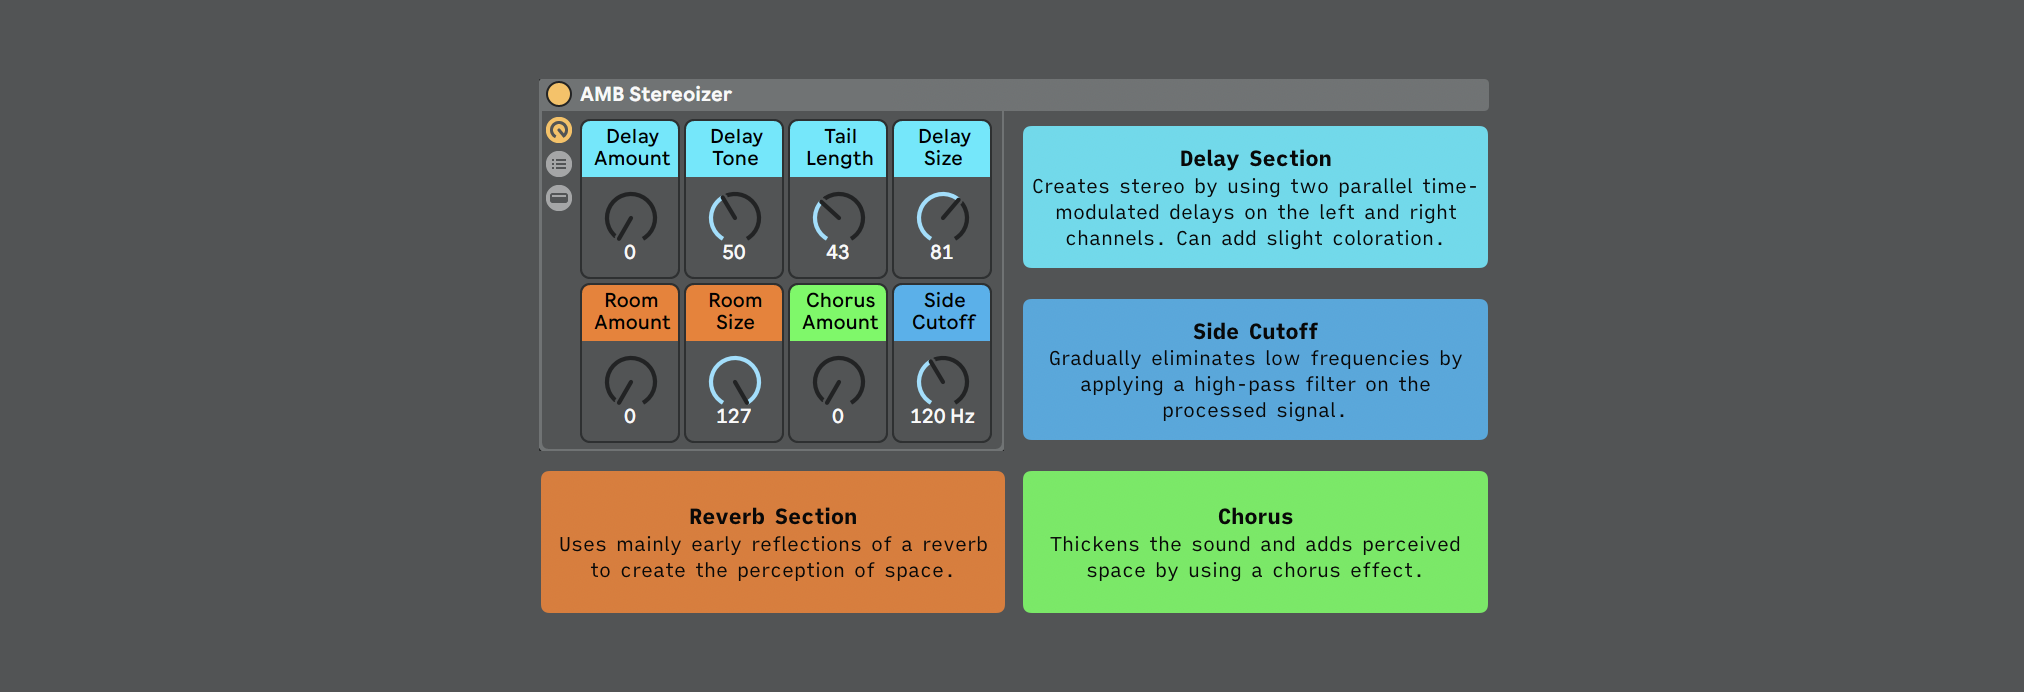 Explanation of the Stereoizer's parameters